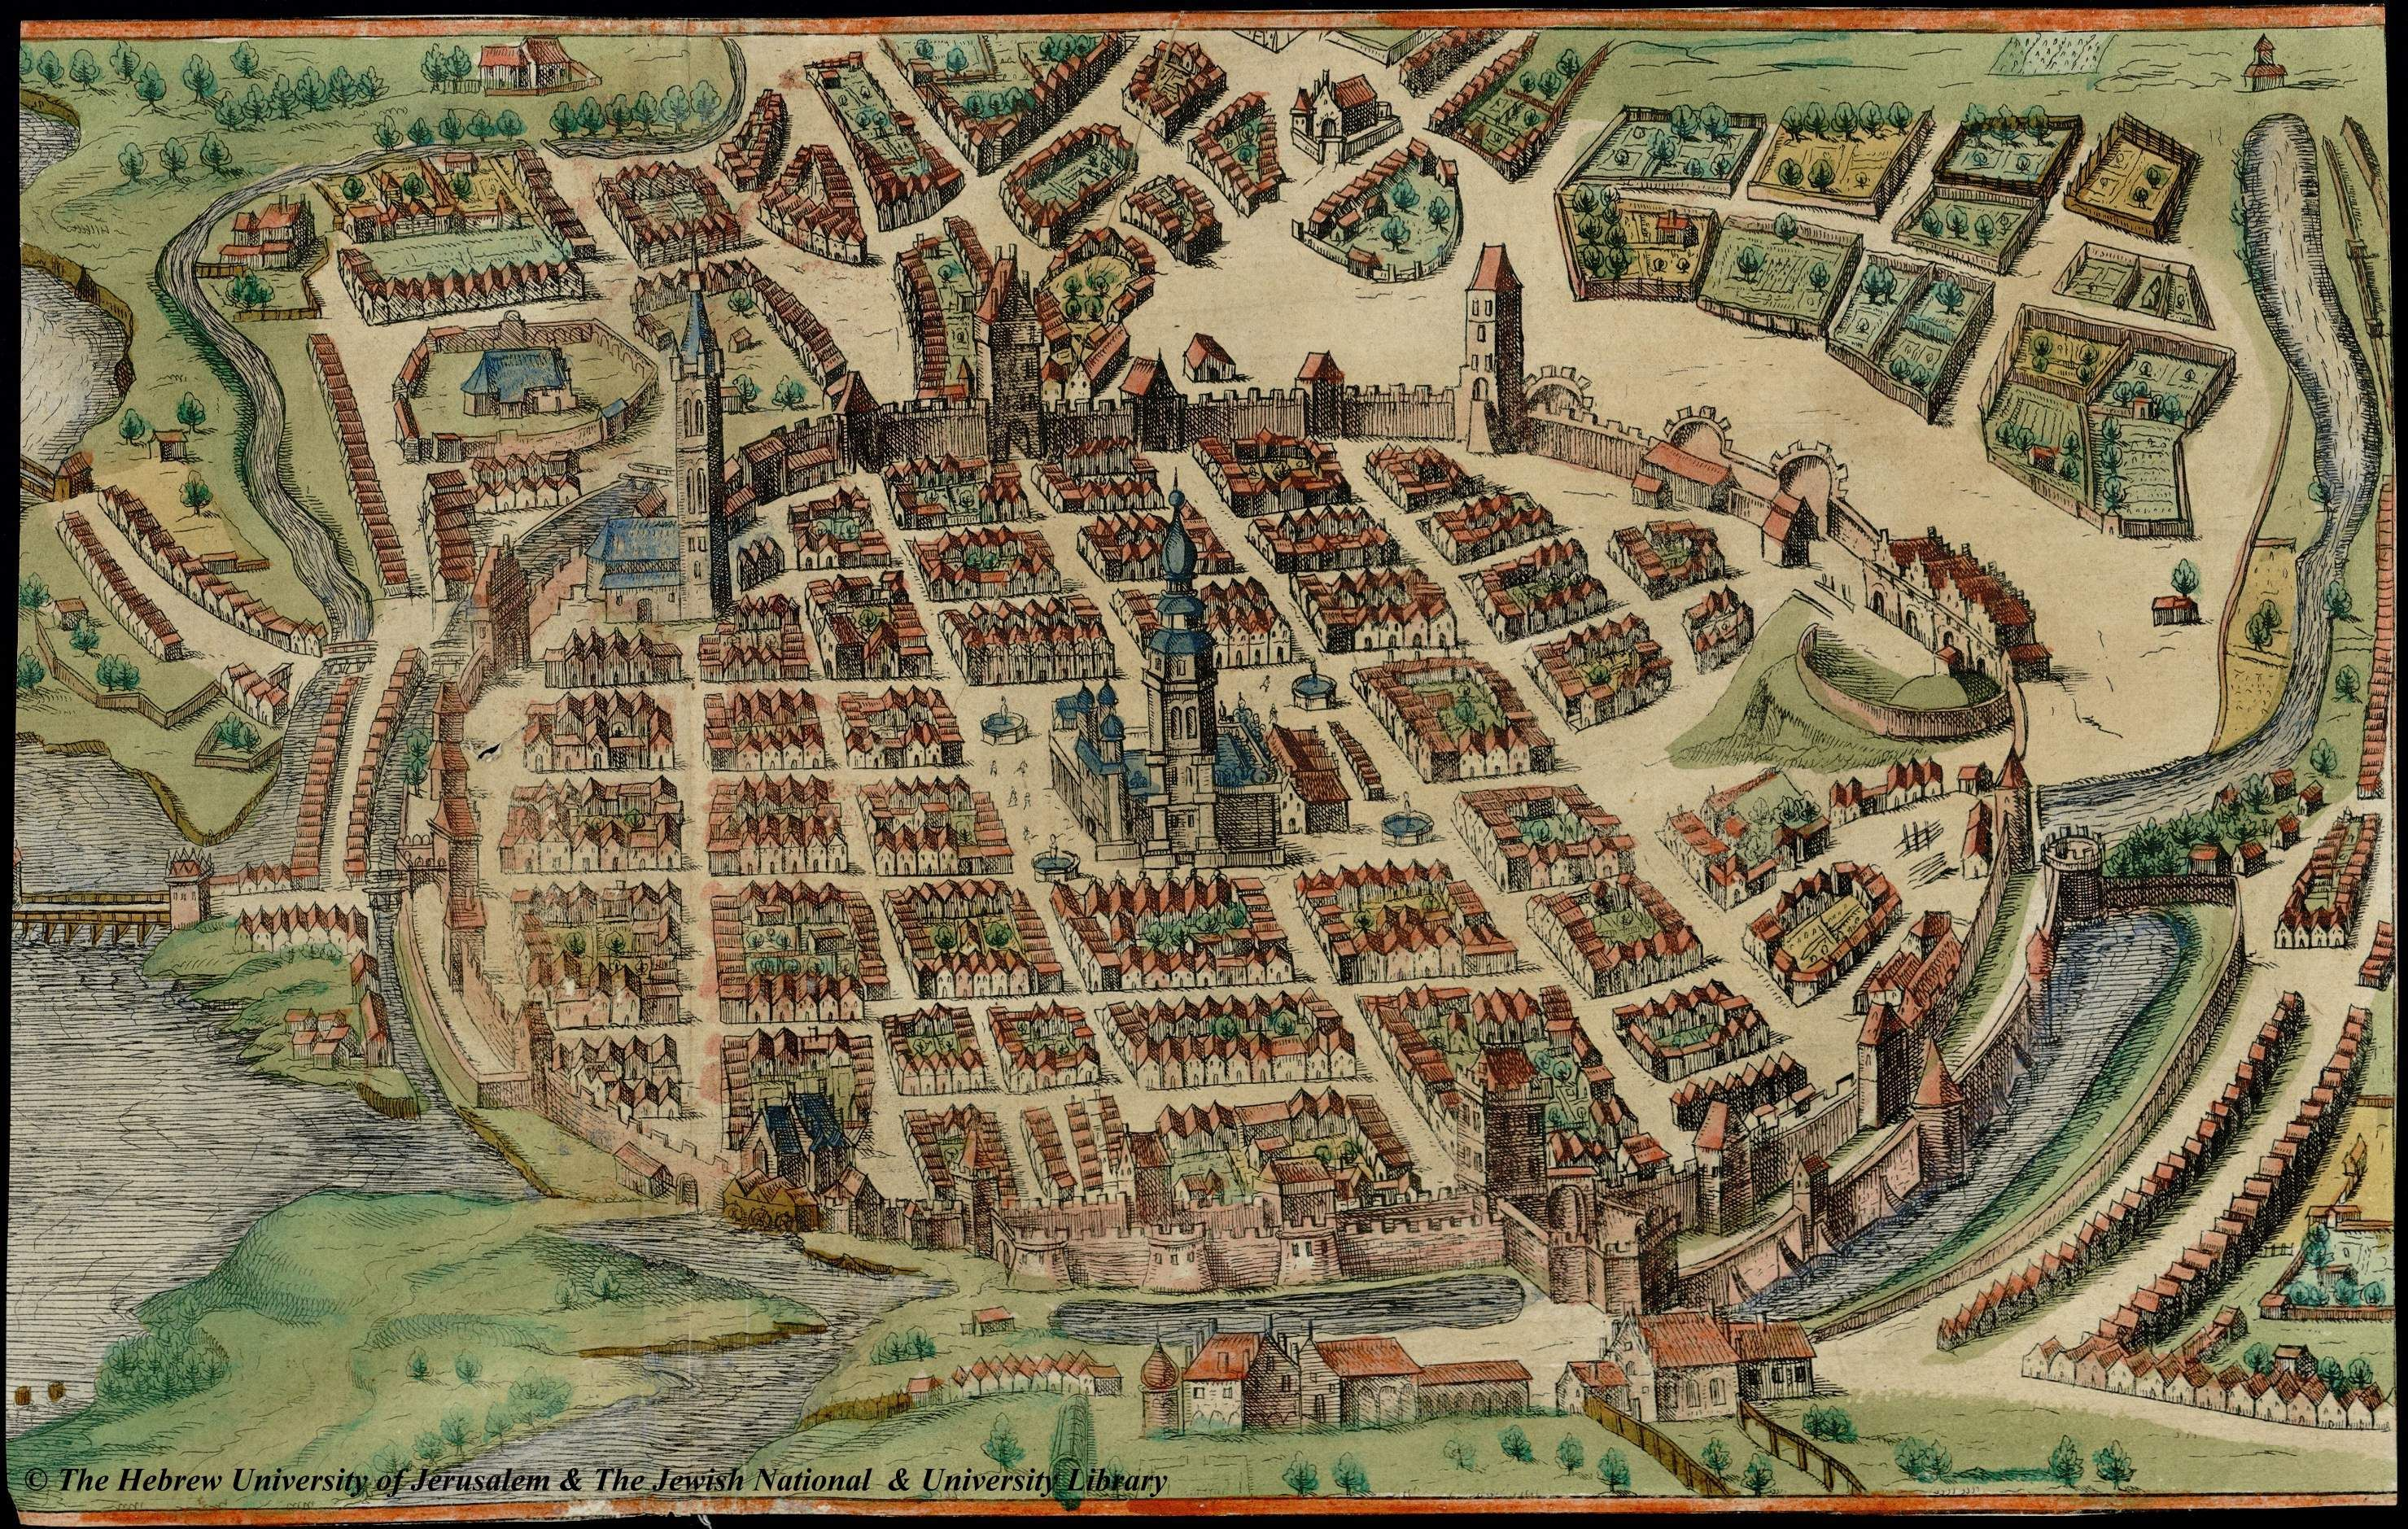 braunhogenbergVI Map of Poznan 1617 Braun and